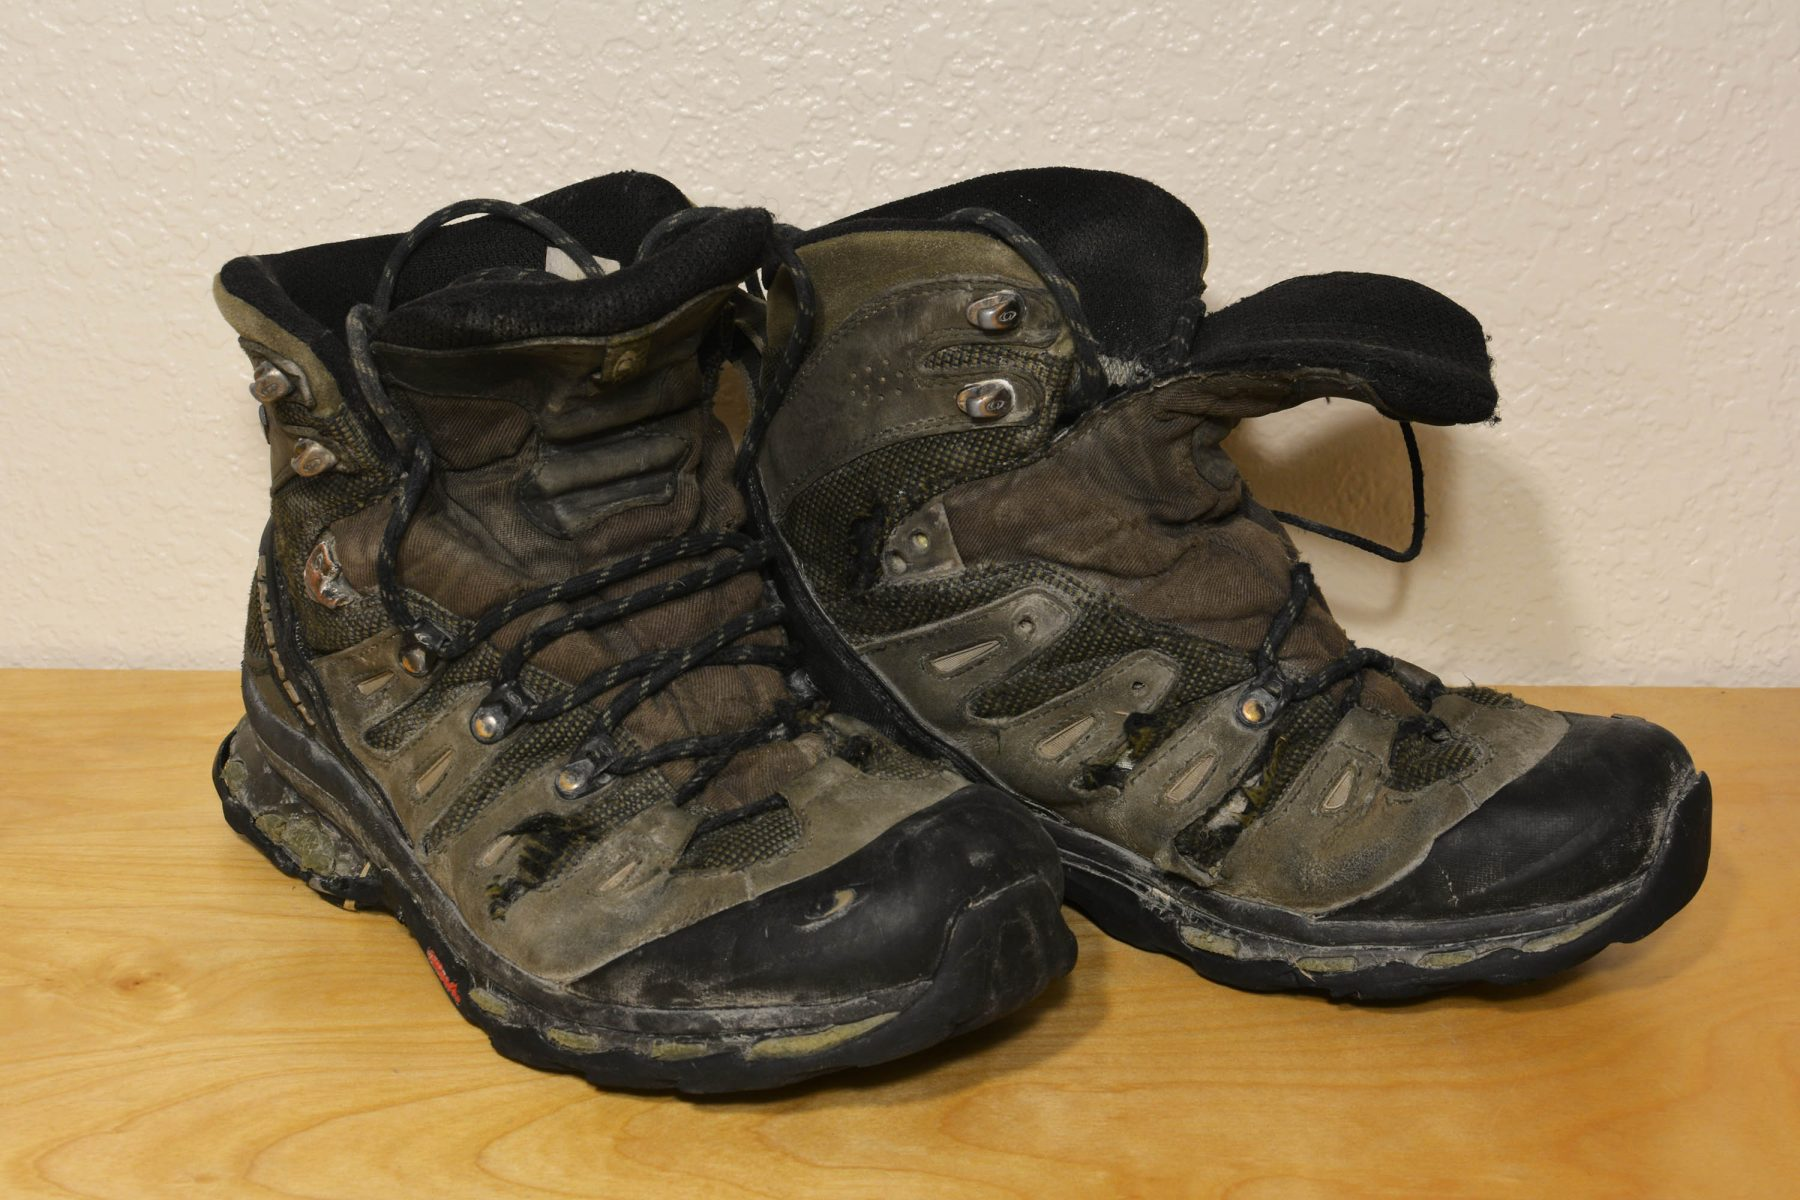 Salomon Quest 3D's at the end of their lives